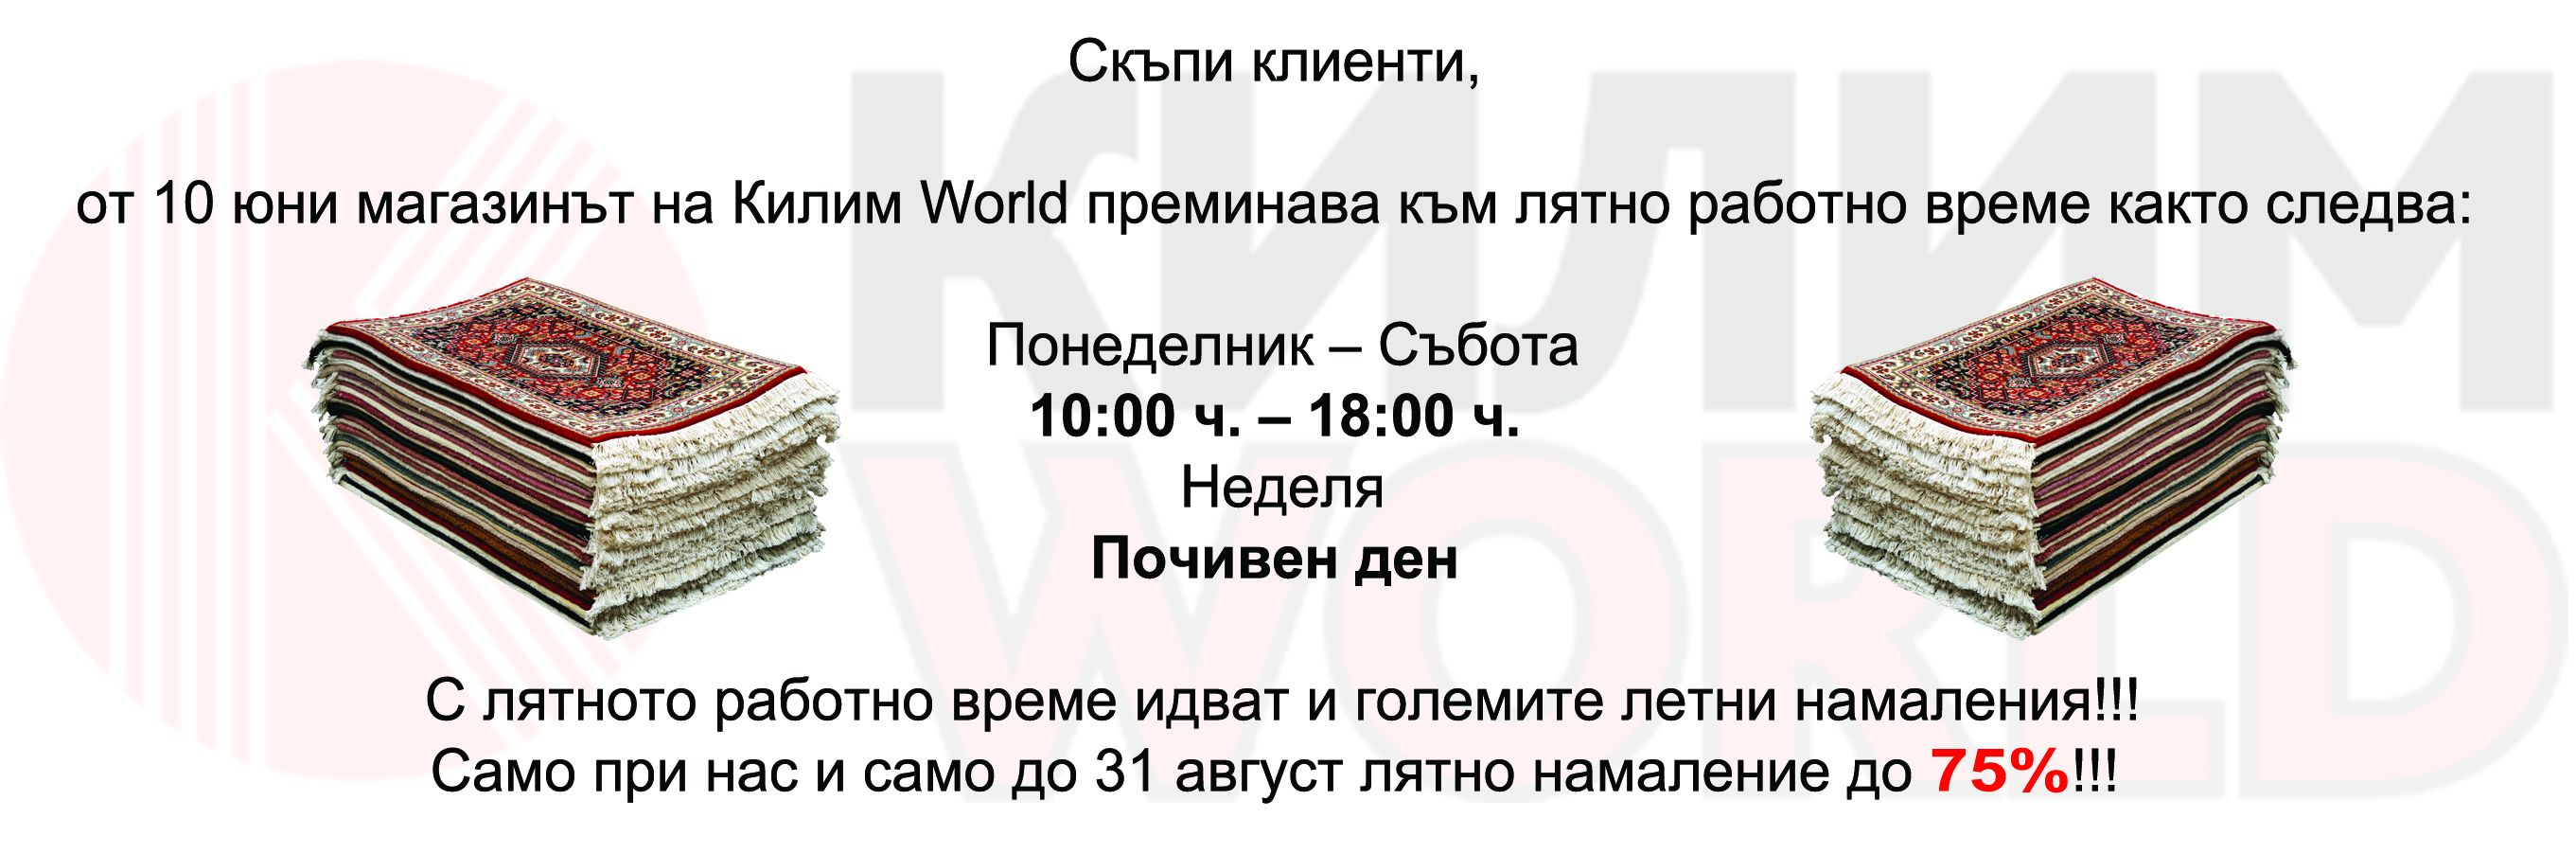 www.kilimworld.bg